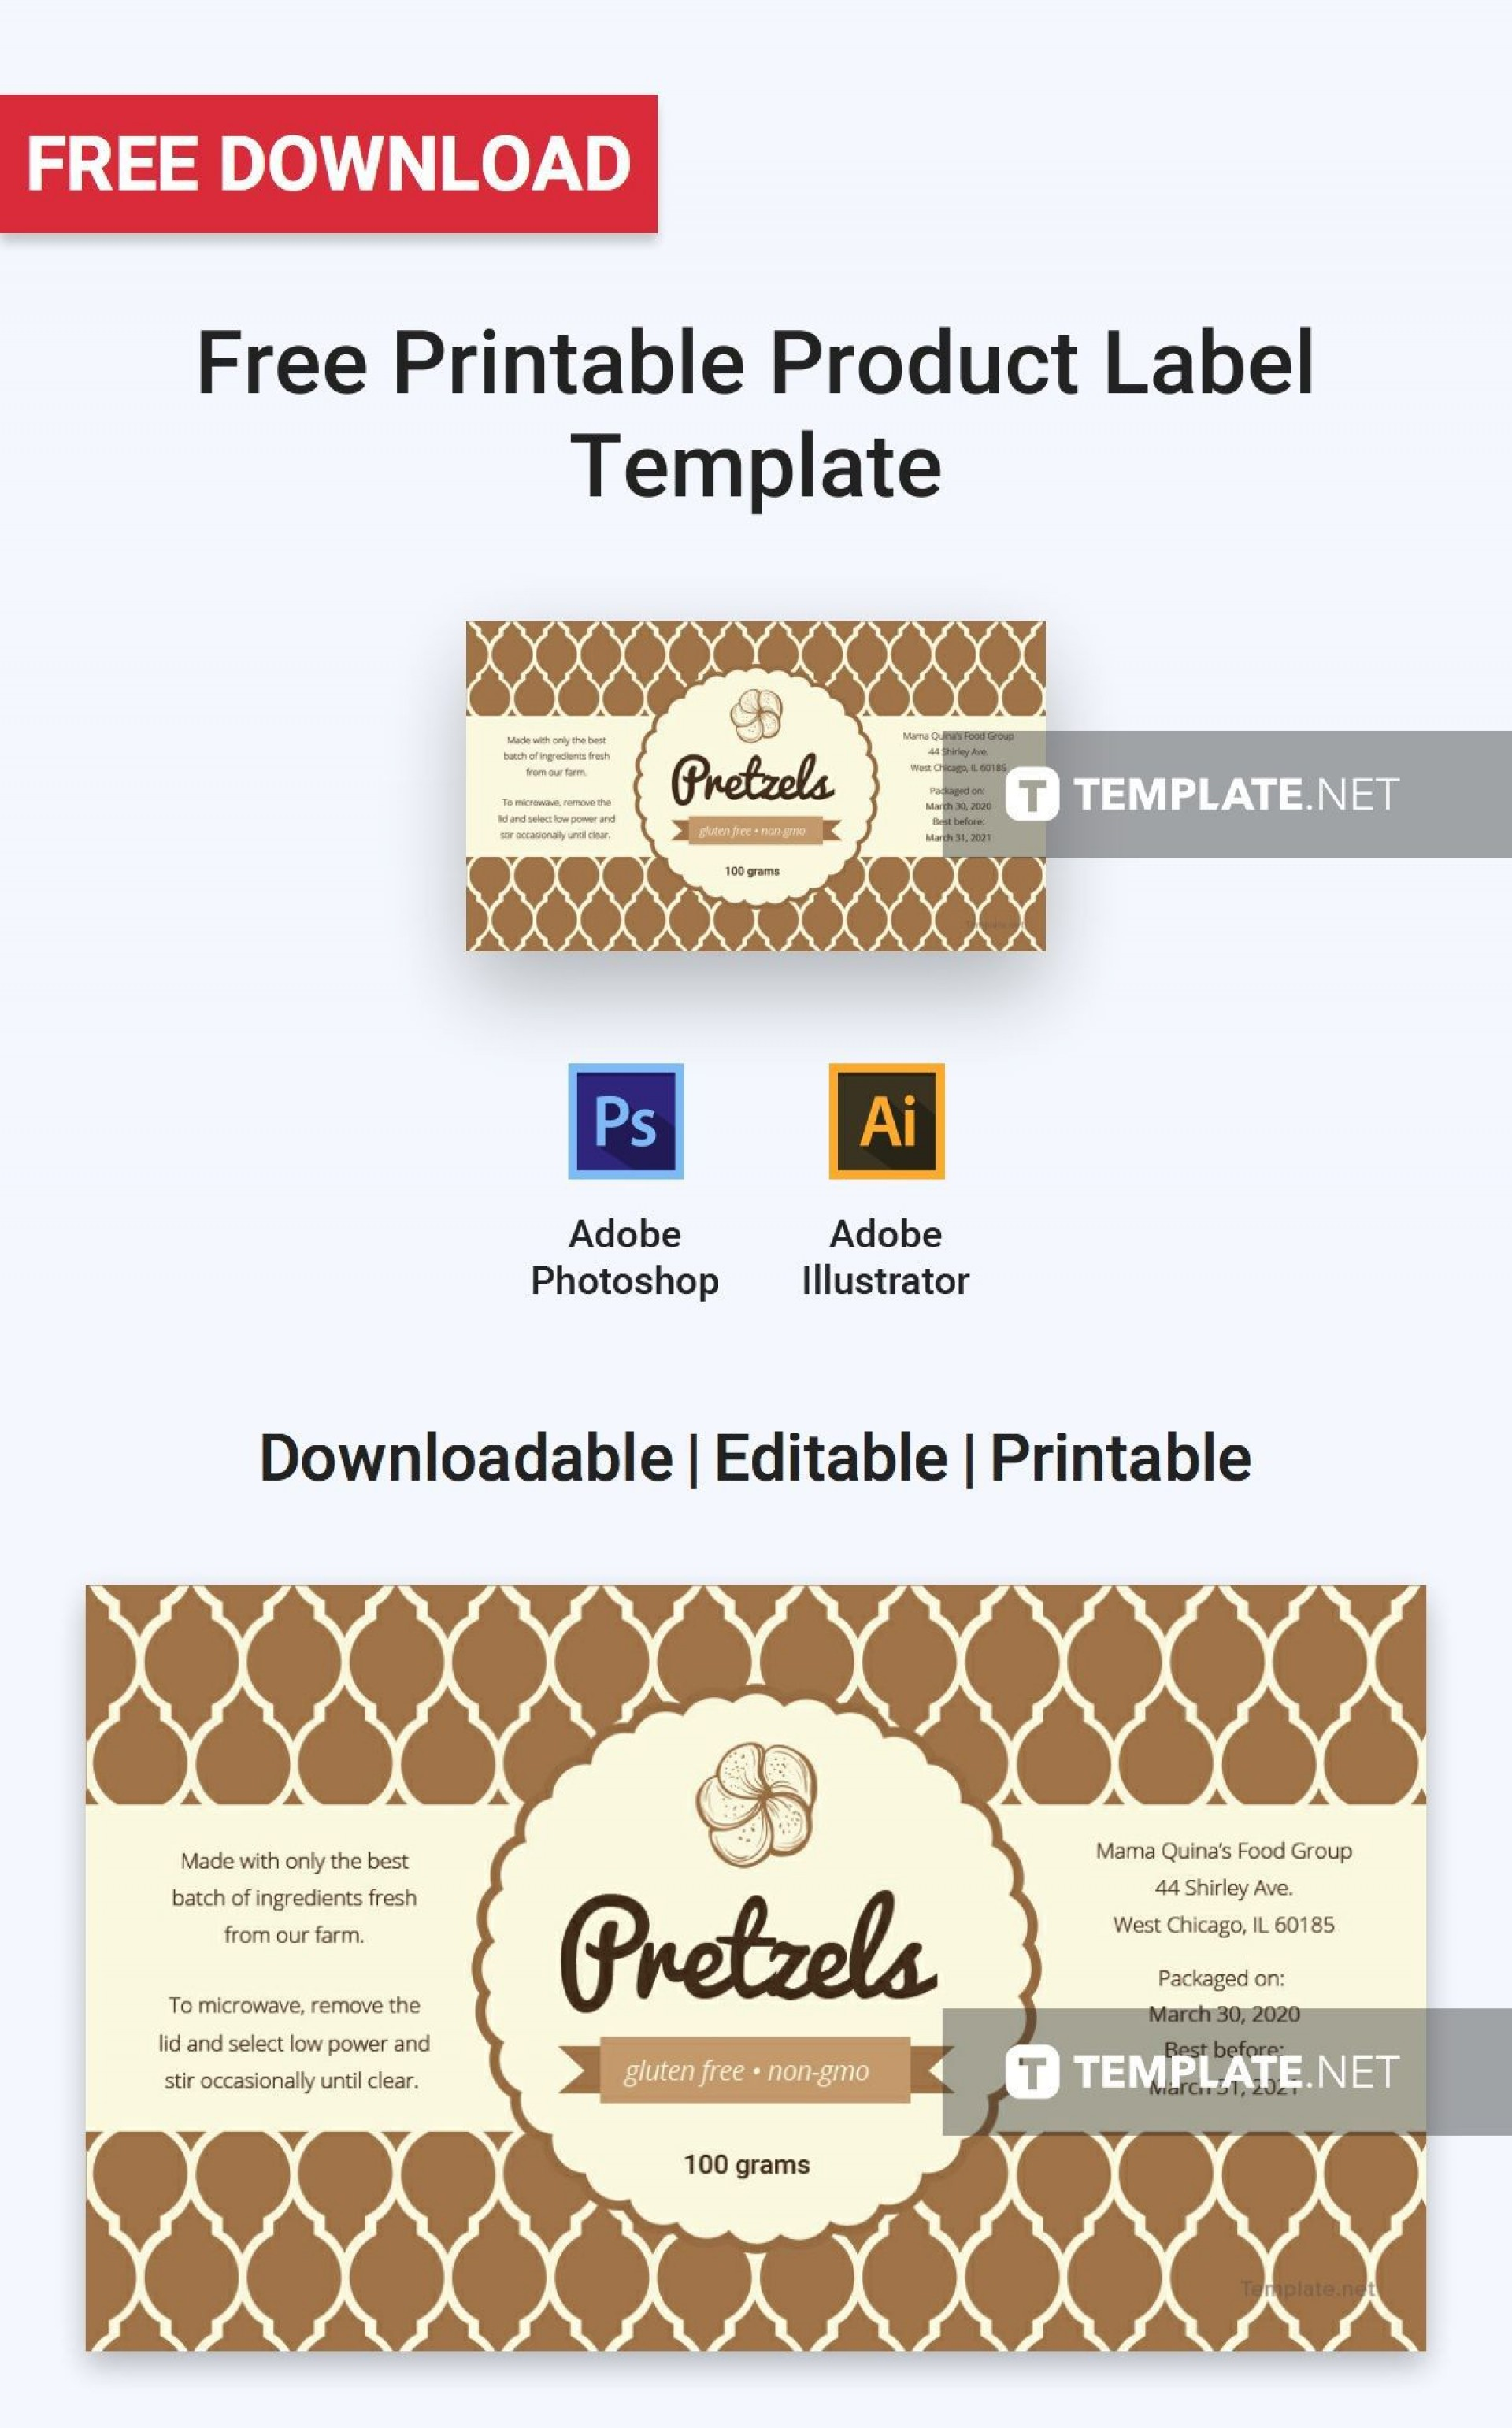 004 Sensational Microsoft Word Label Template Free Download Picture 1920